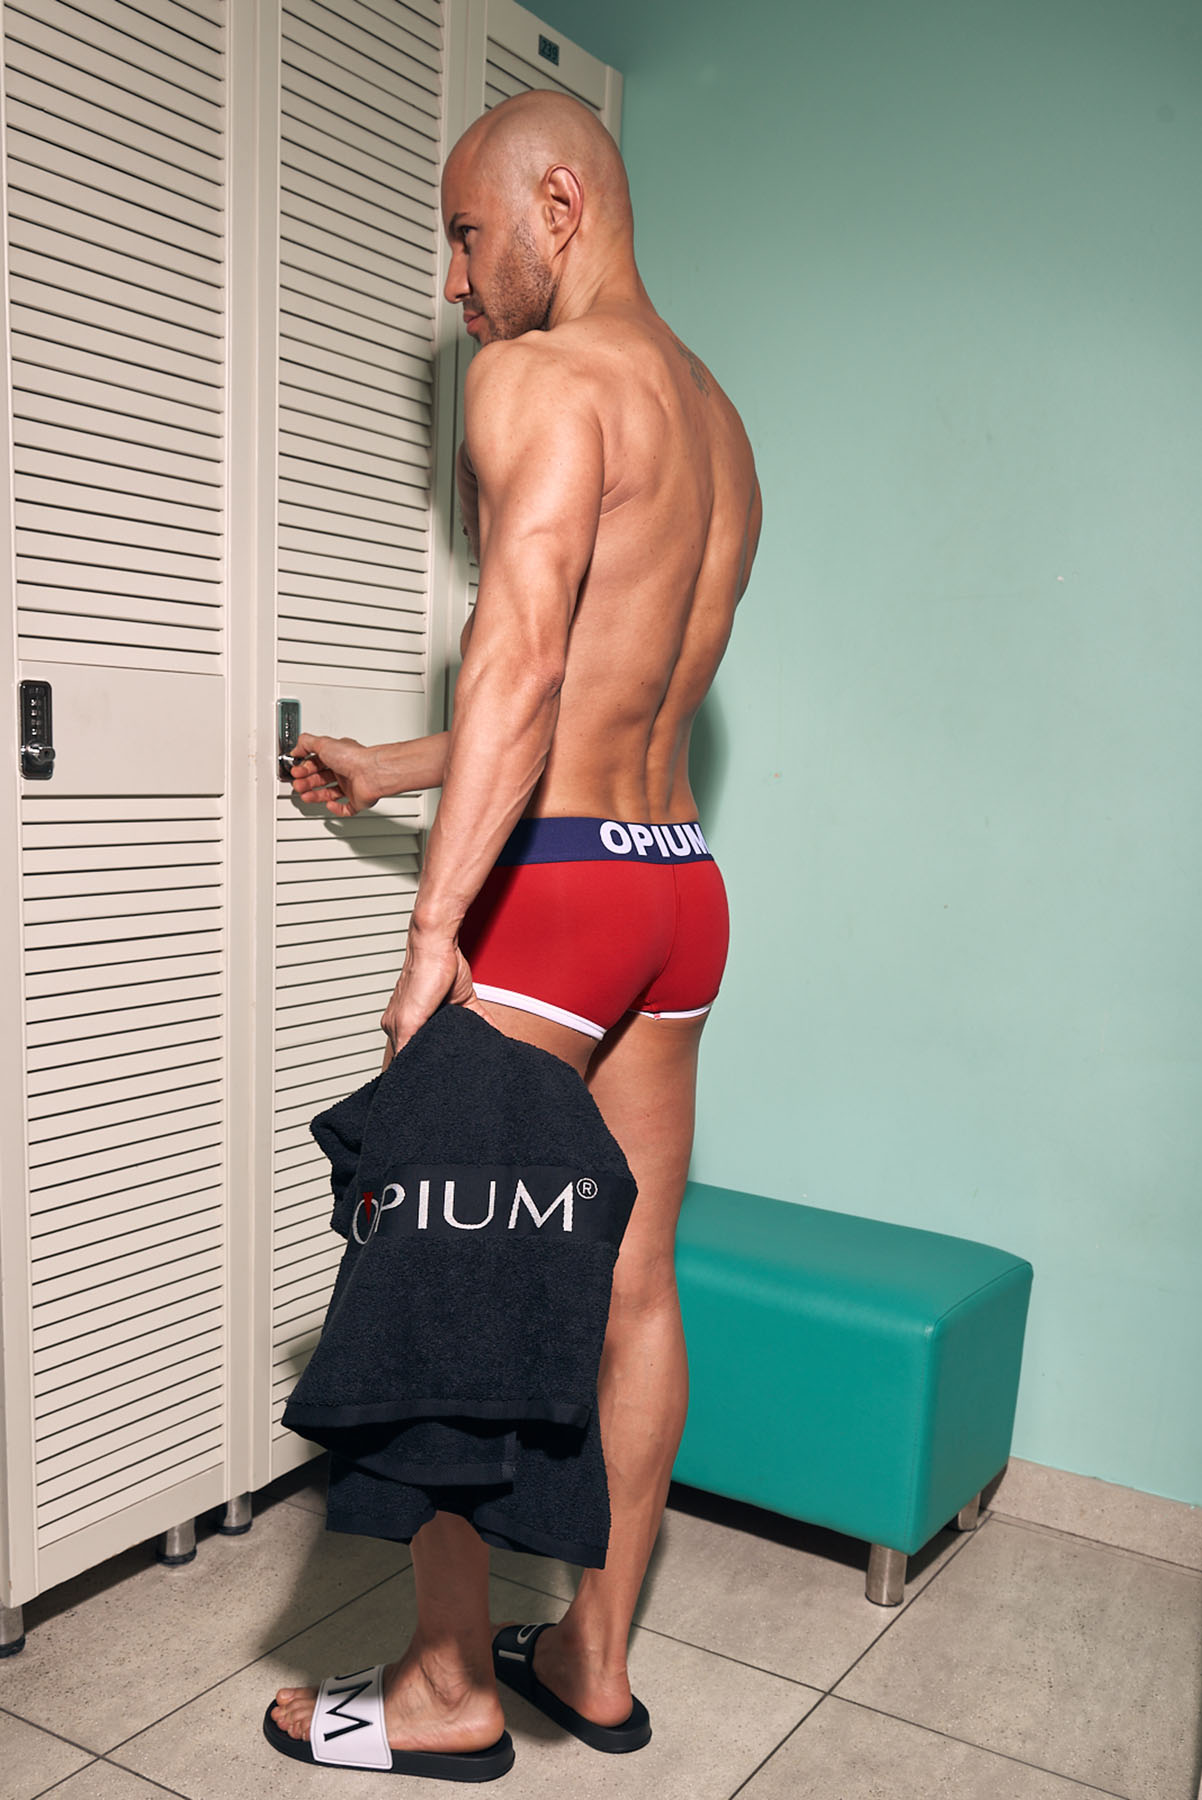 Photoshoot for men's underwear Opium